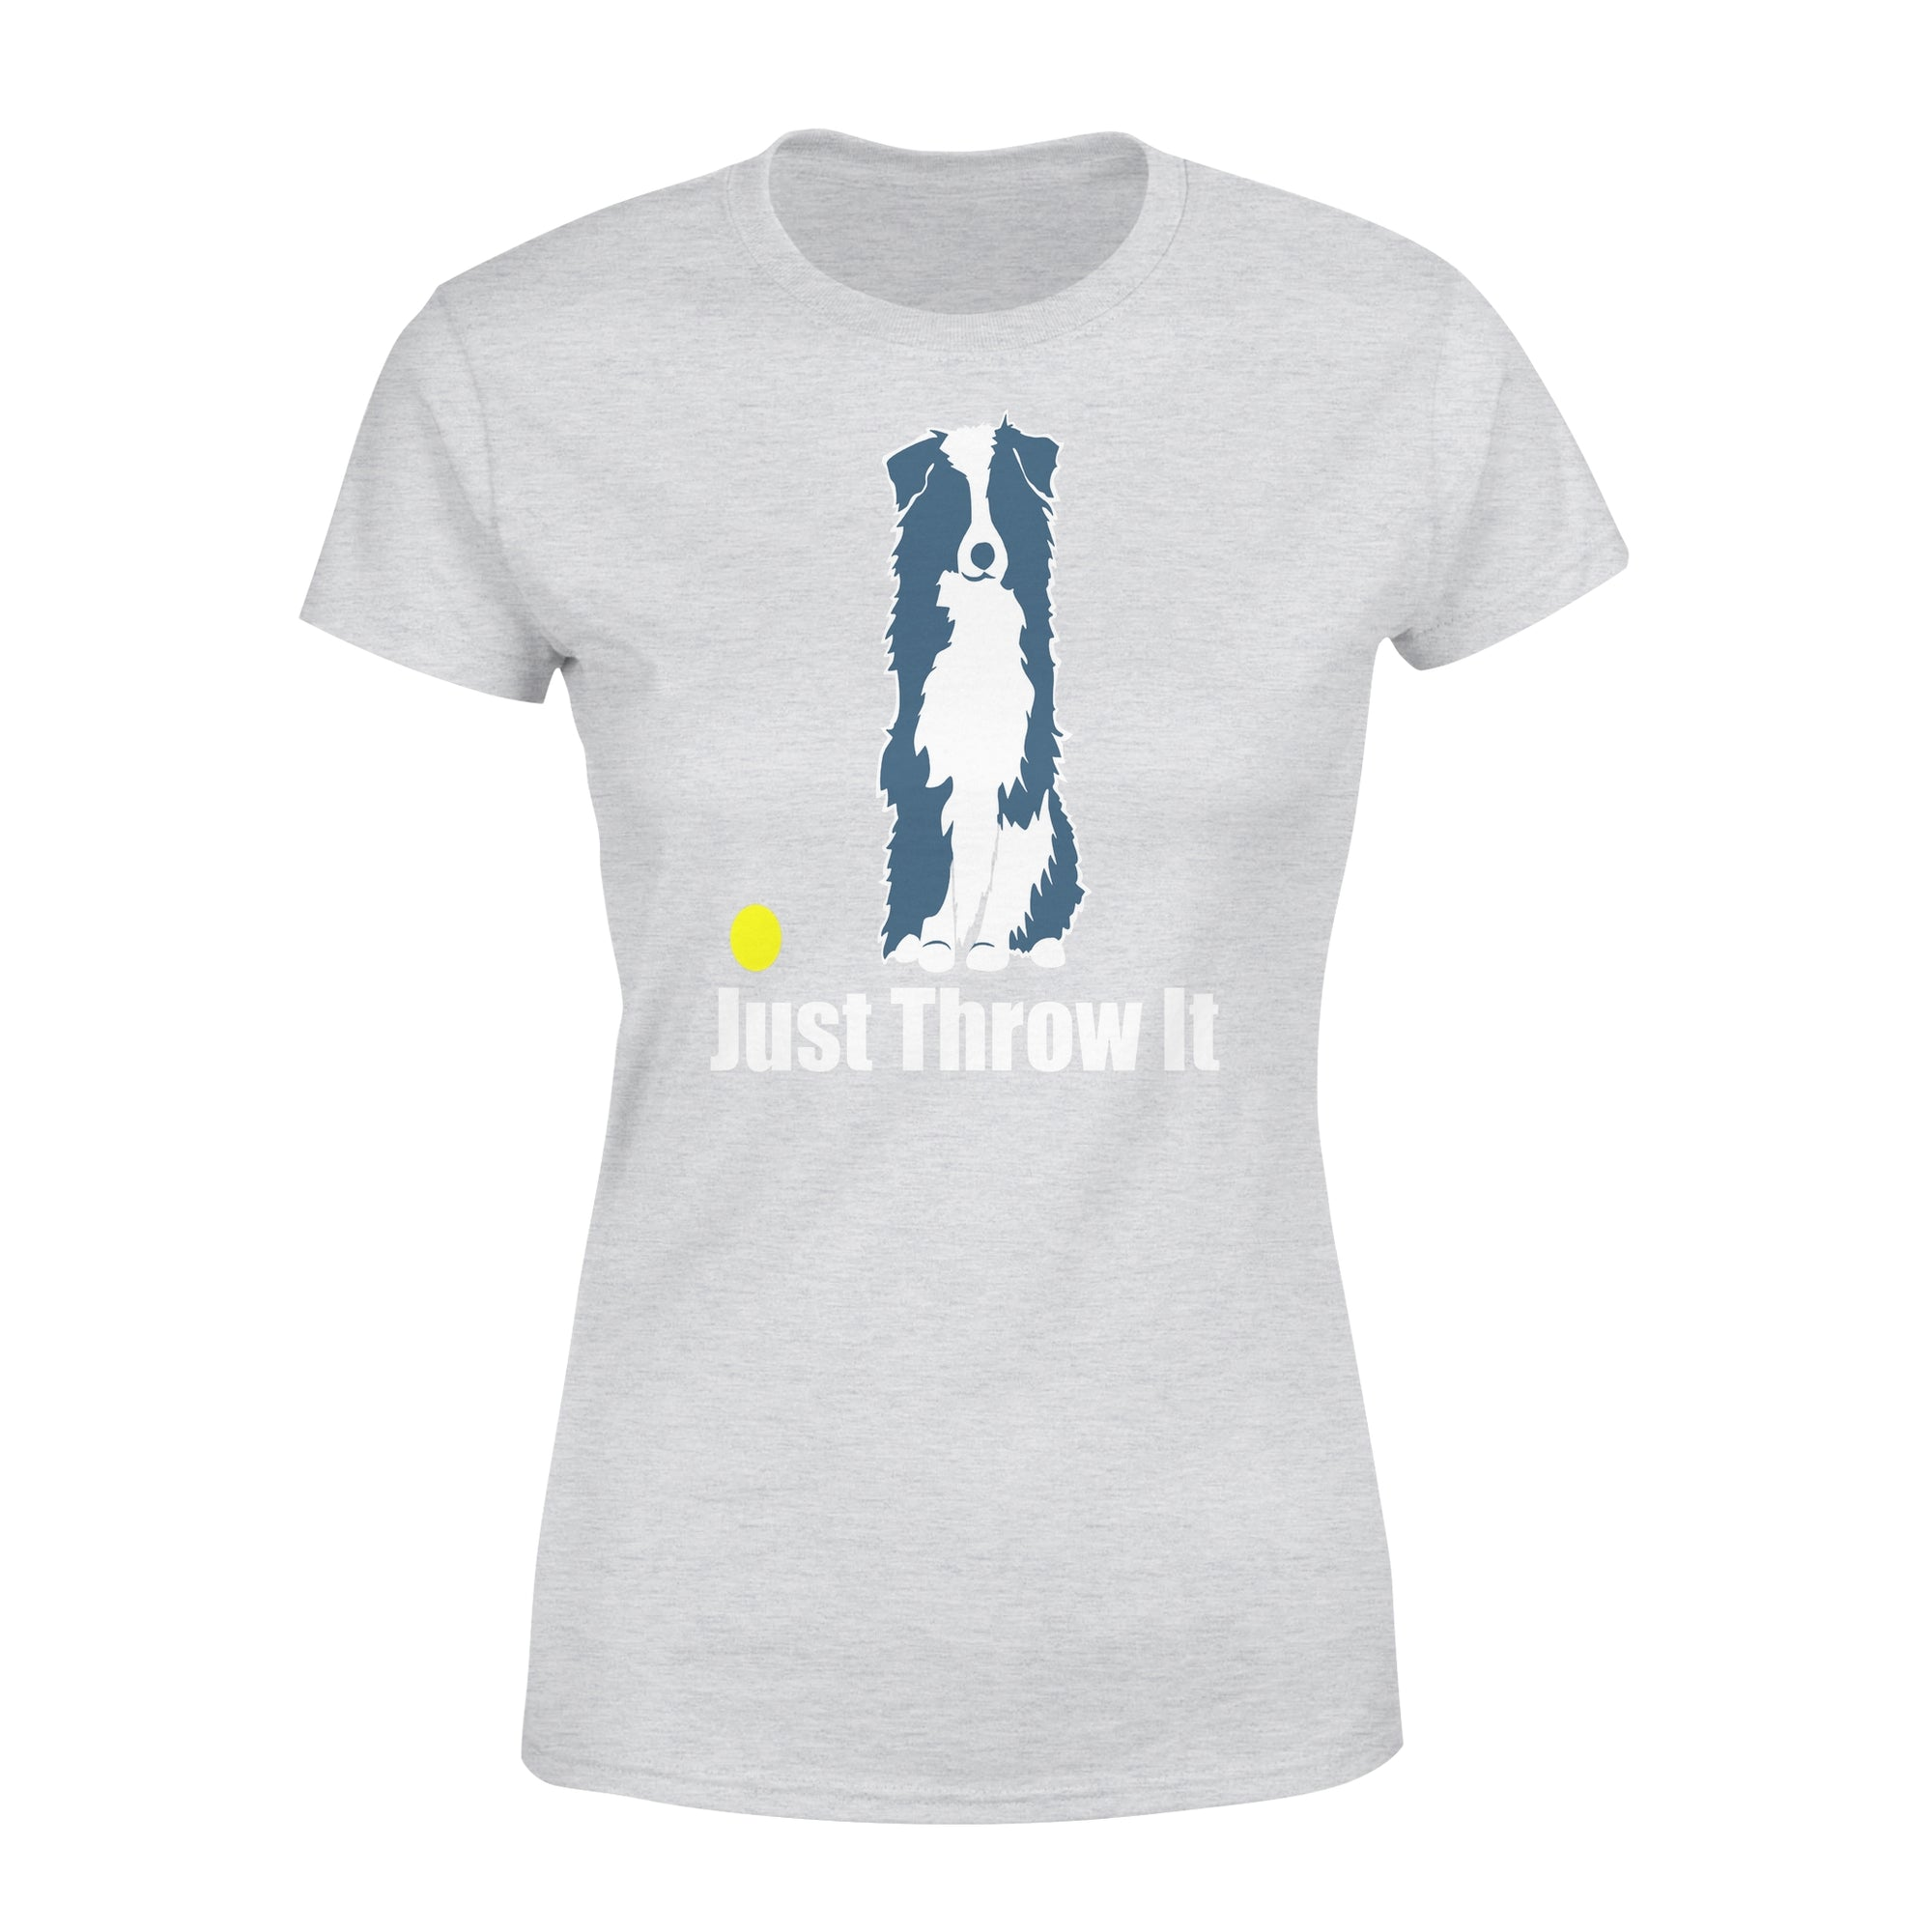 VIRA Premium Women's Tee For Australian Shepherd Lovers